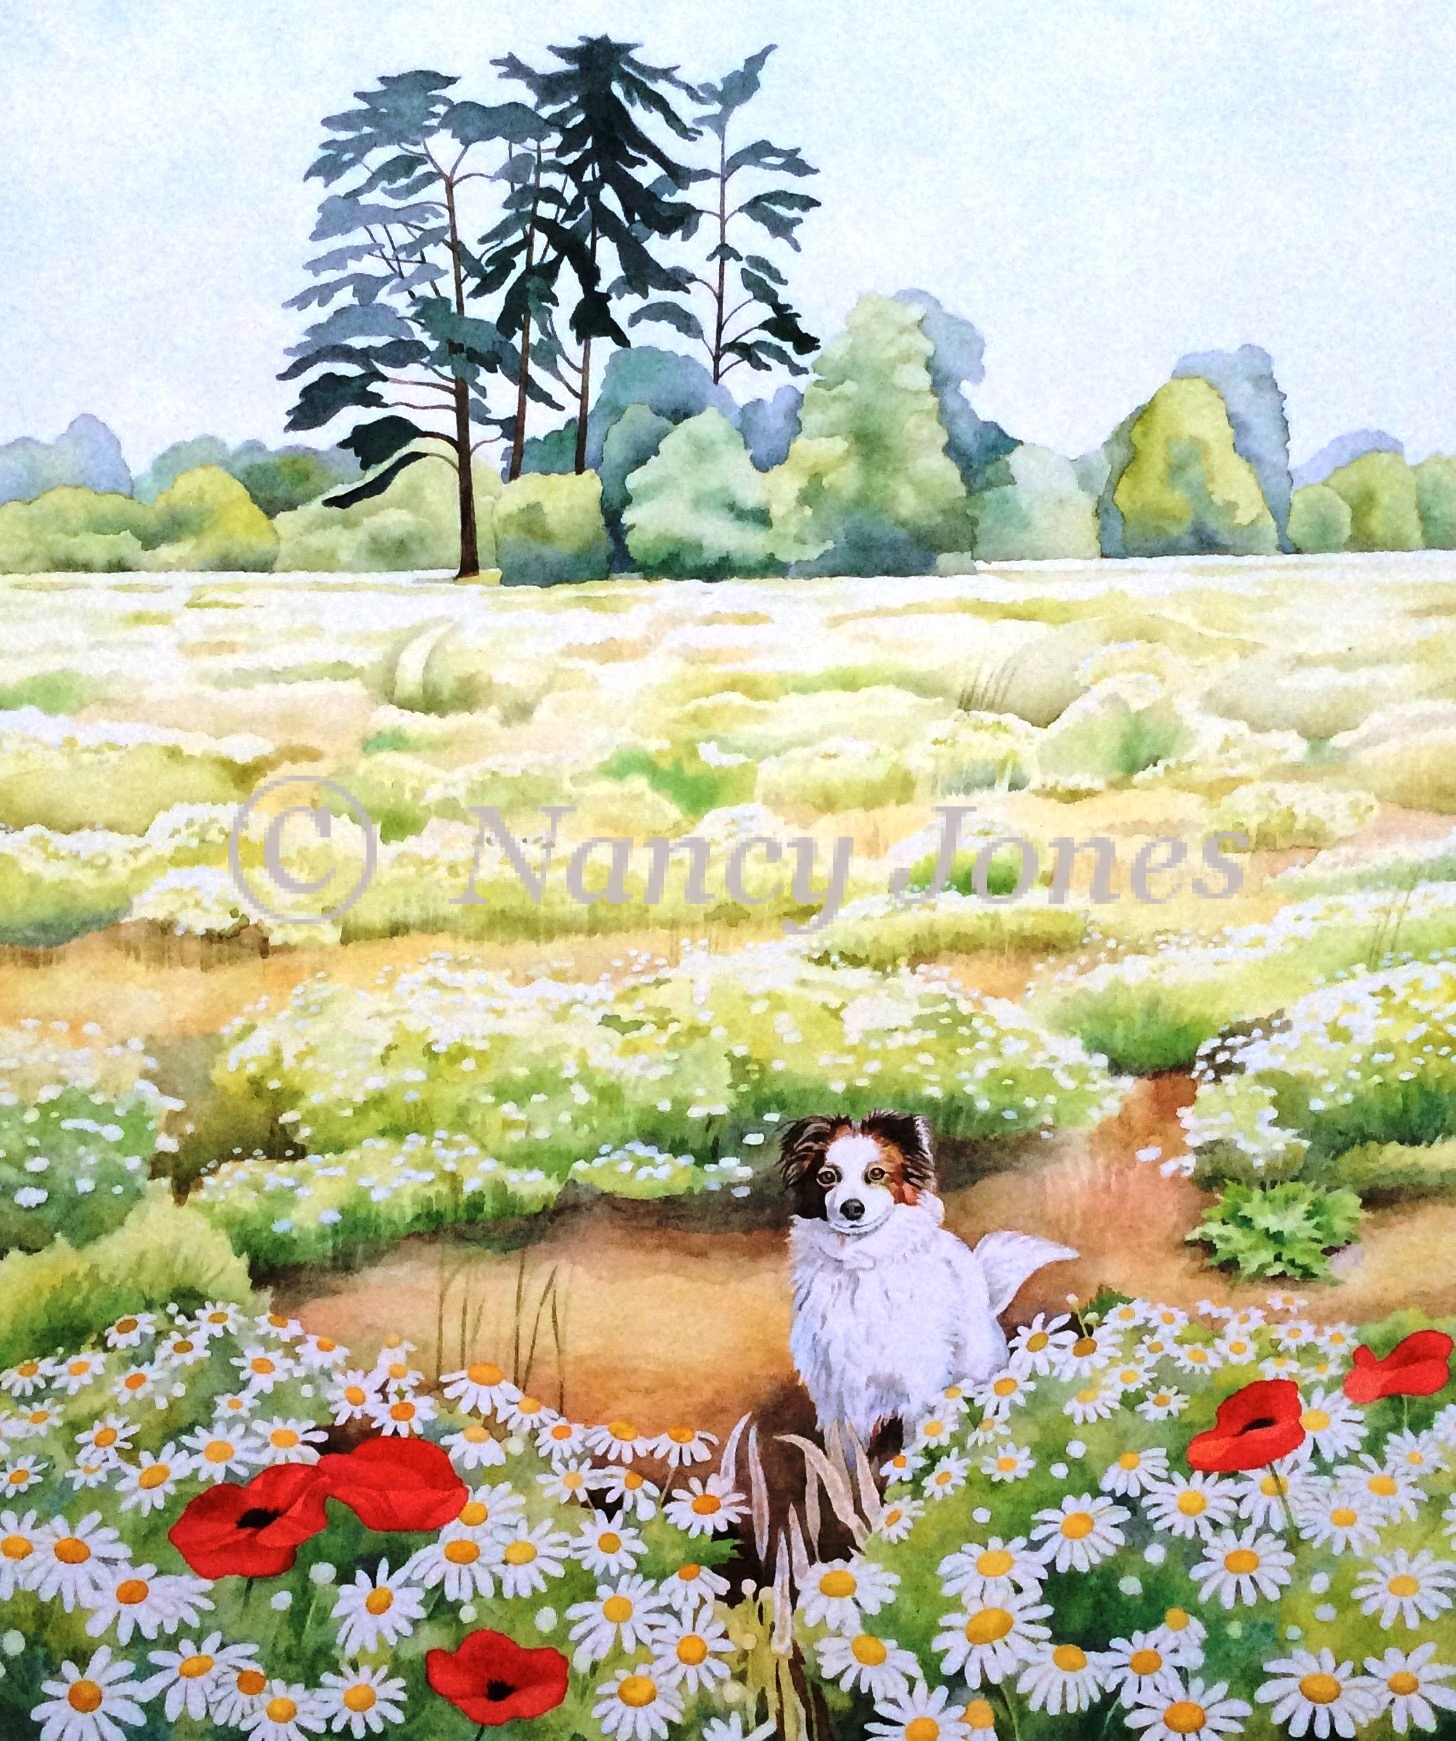 Willow and poppies